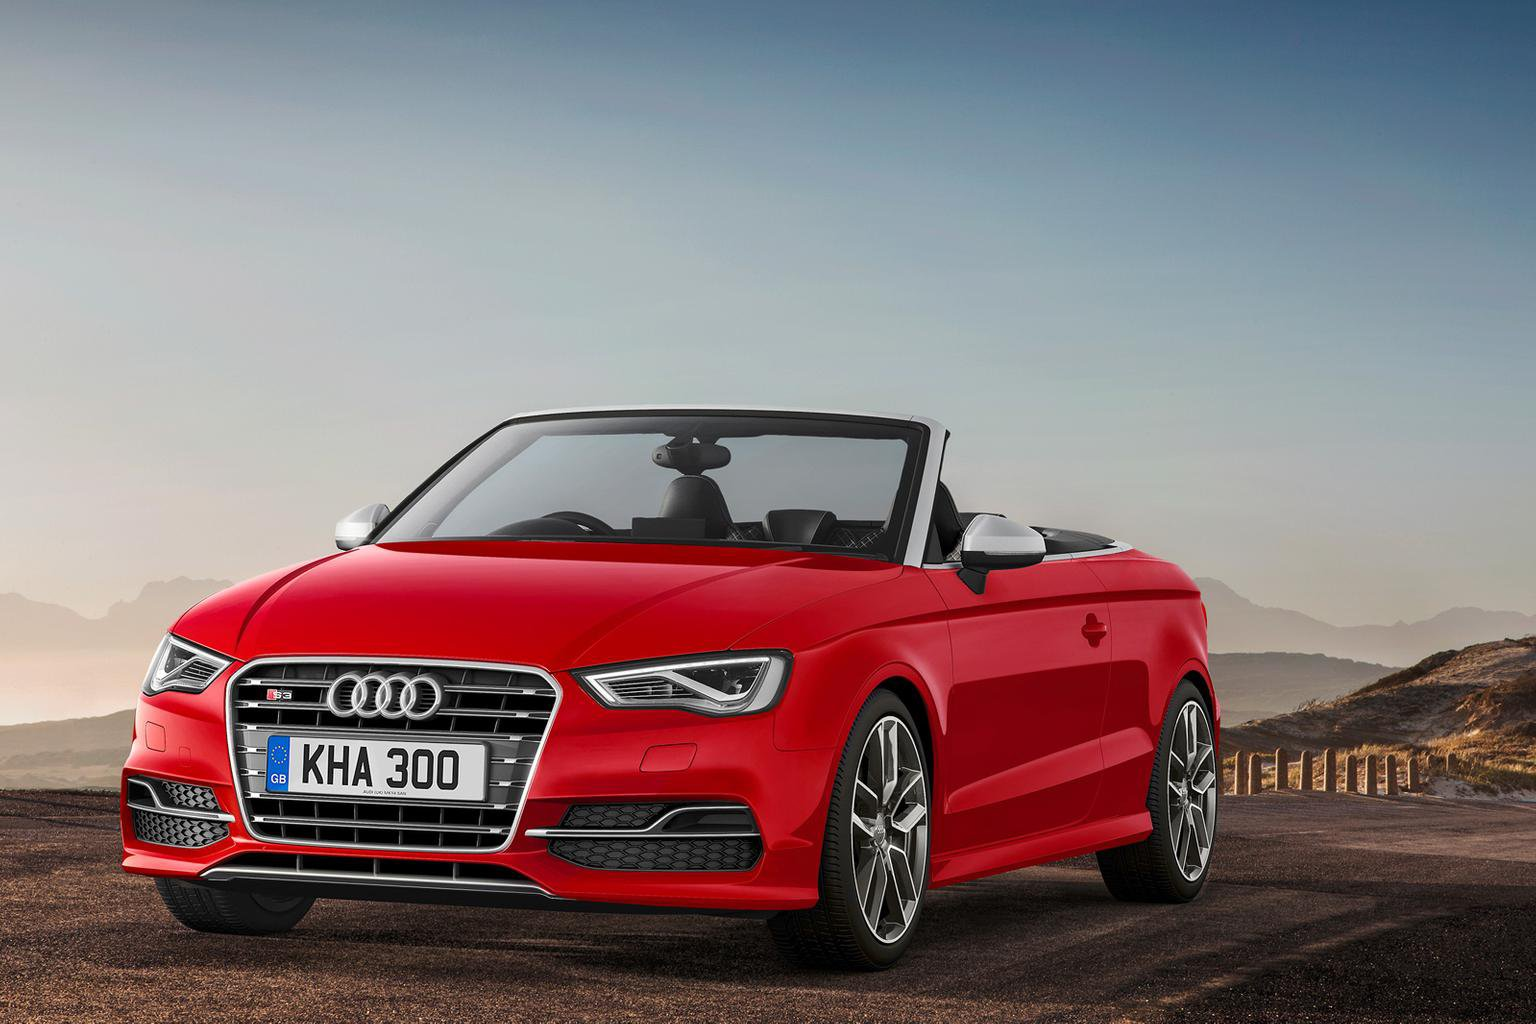 Deal of the day: Audi S3 Cabriolet